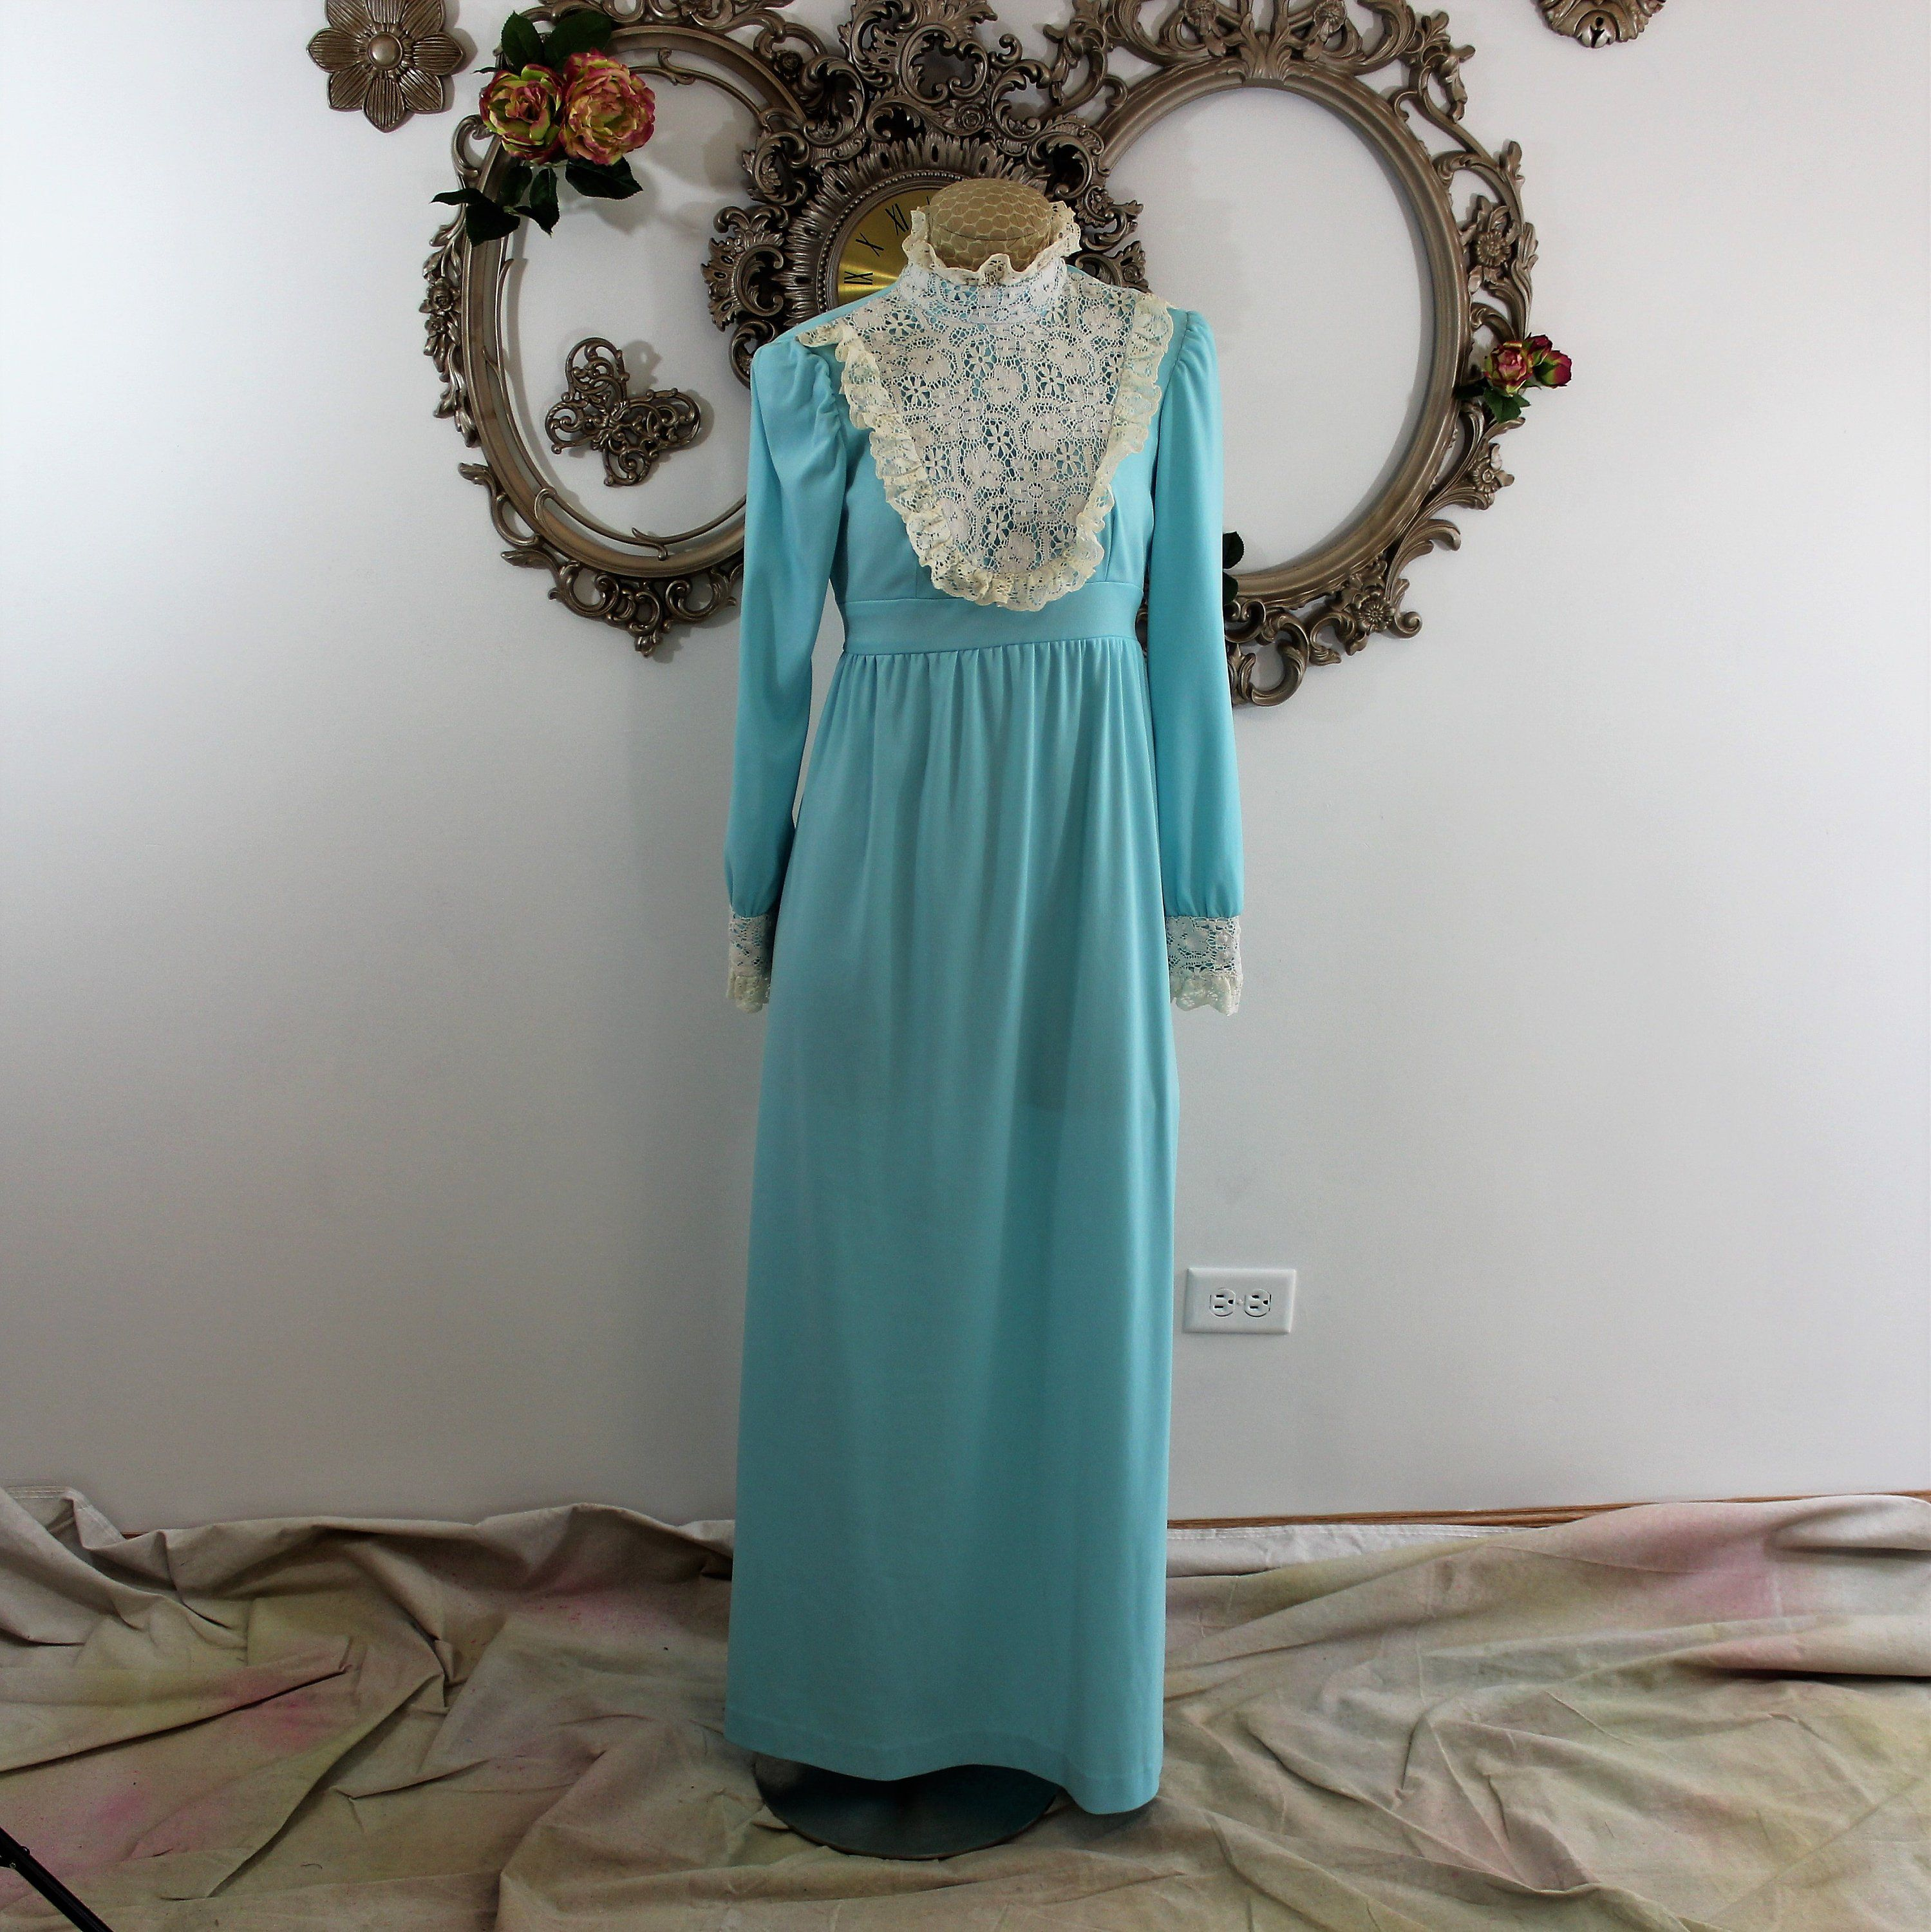 Vintage 1970 S Long Dress Hand Made Turquoise With Lace Etsy Dresses Long Dress Prom Dresses Vintage [ 3000 x 2999 Pixel ]